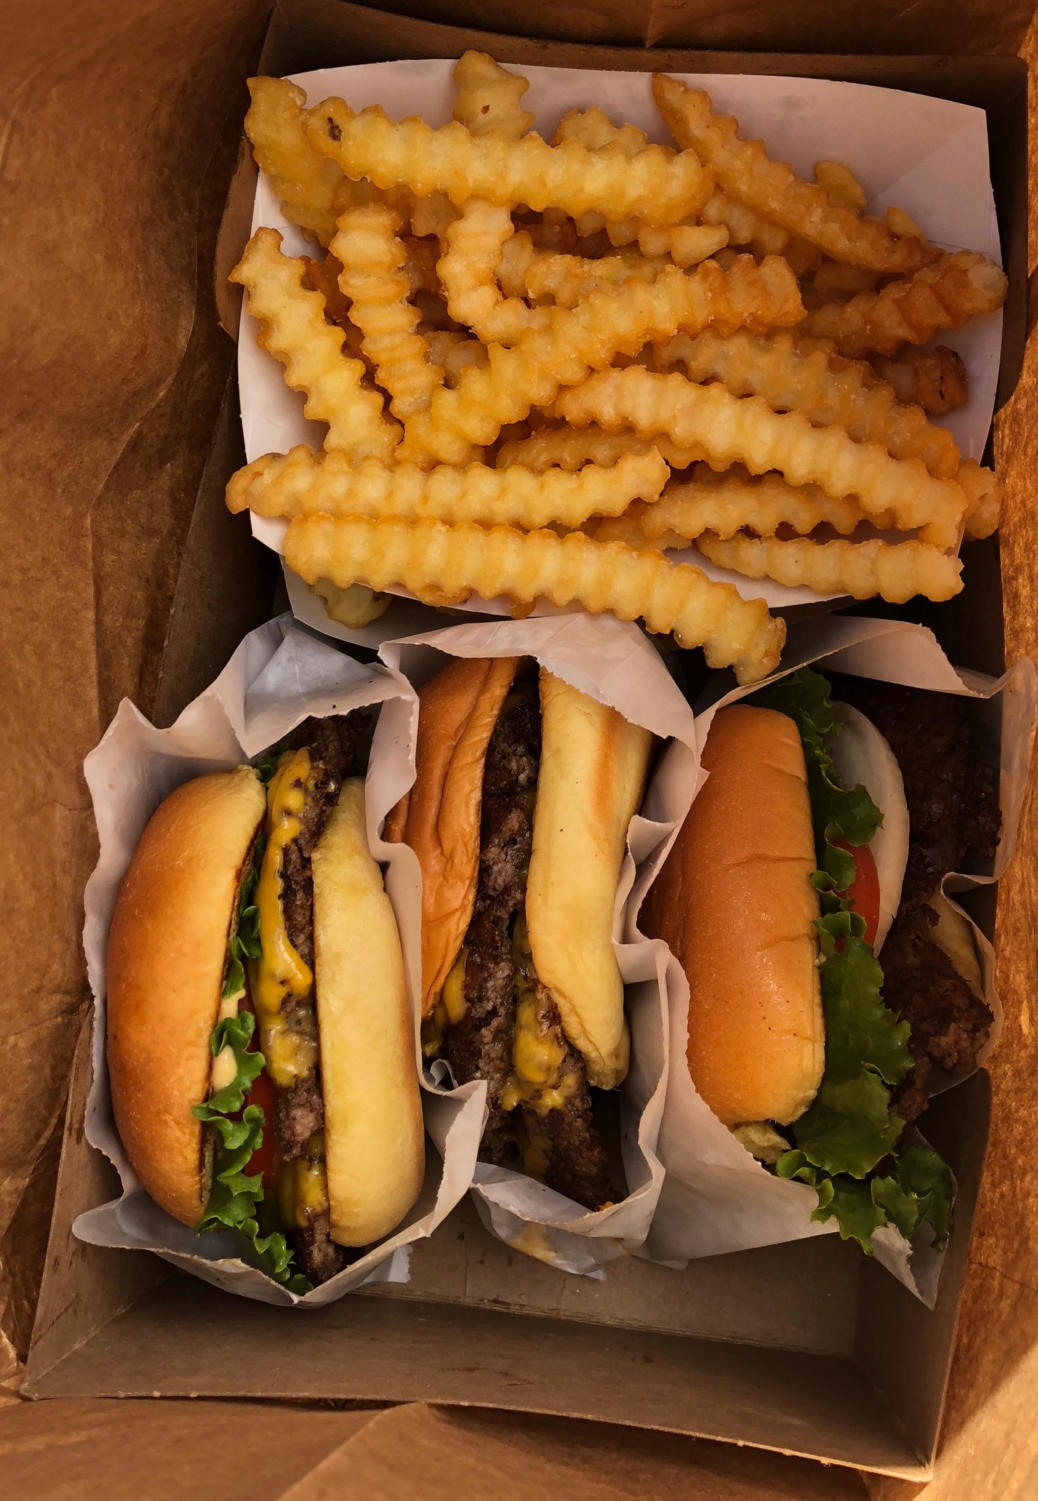 Shake Shack burgers and fries packed up to-go.